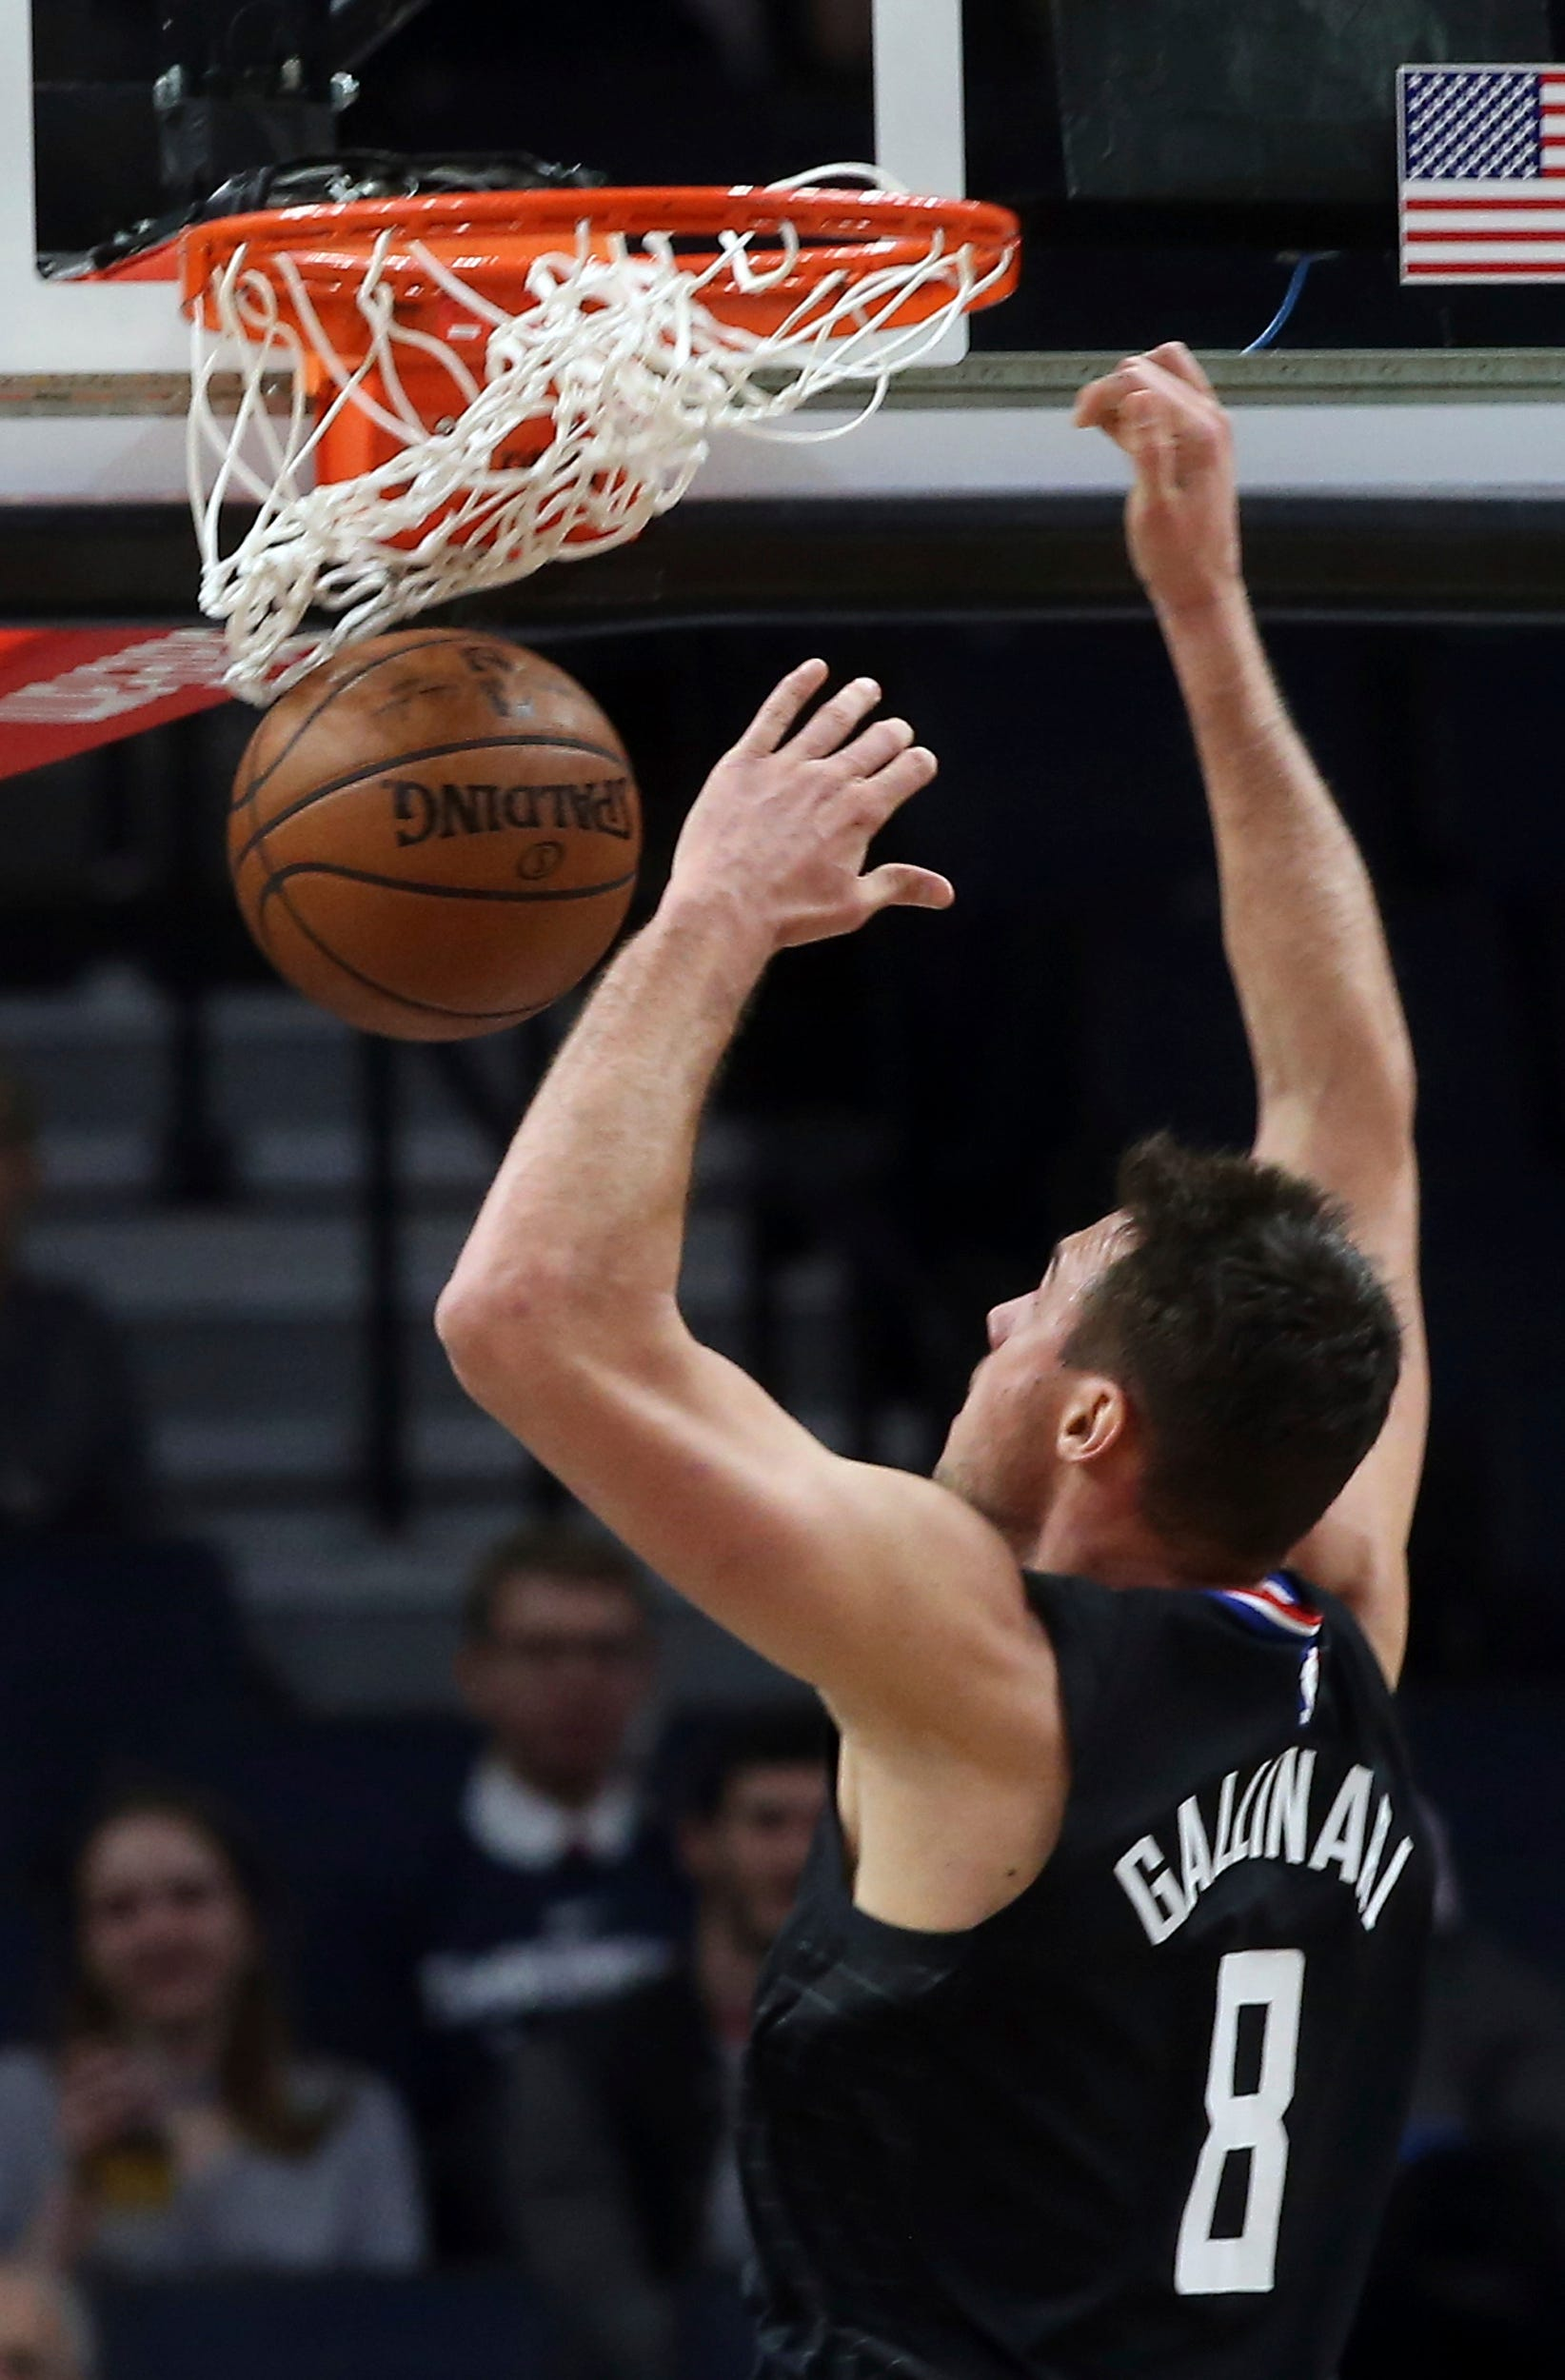 Healthy Rose, Teague lead Timberwolves past Clippers 130-120